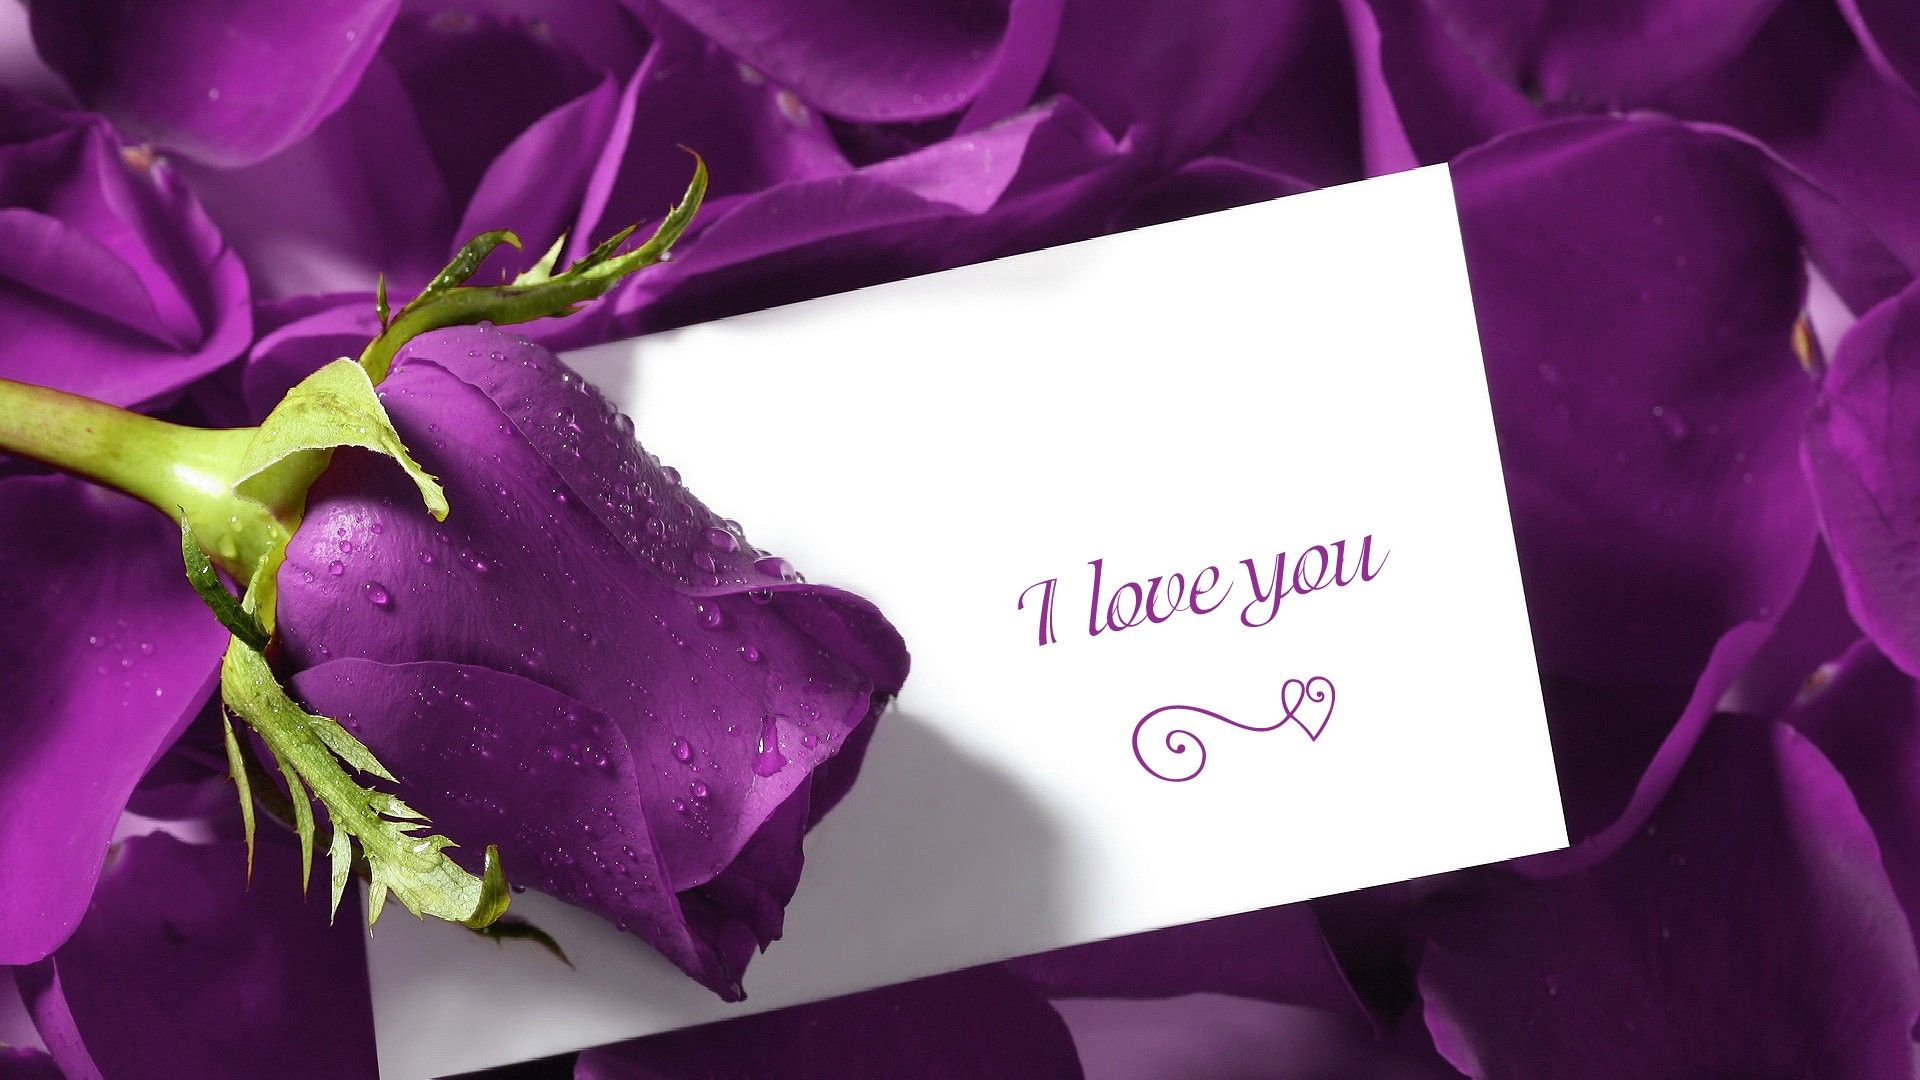 Purple Backgrounds Fb Covers Love You Quotes Flower Background Hd